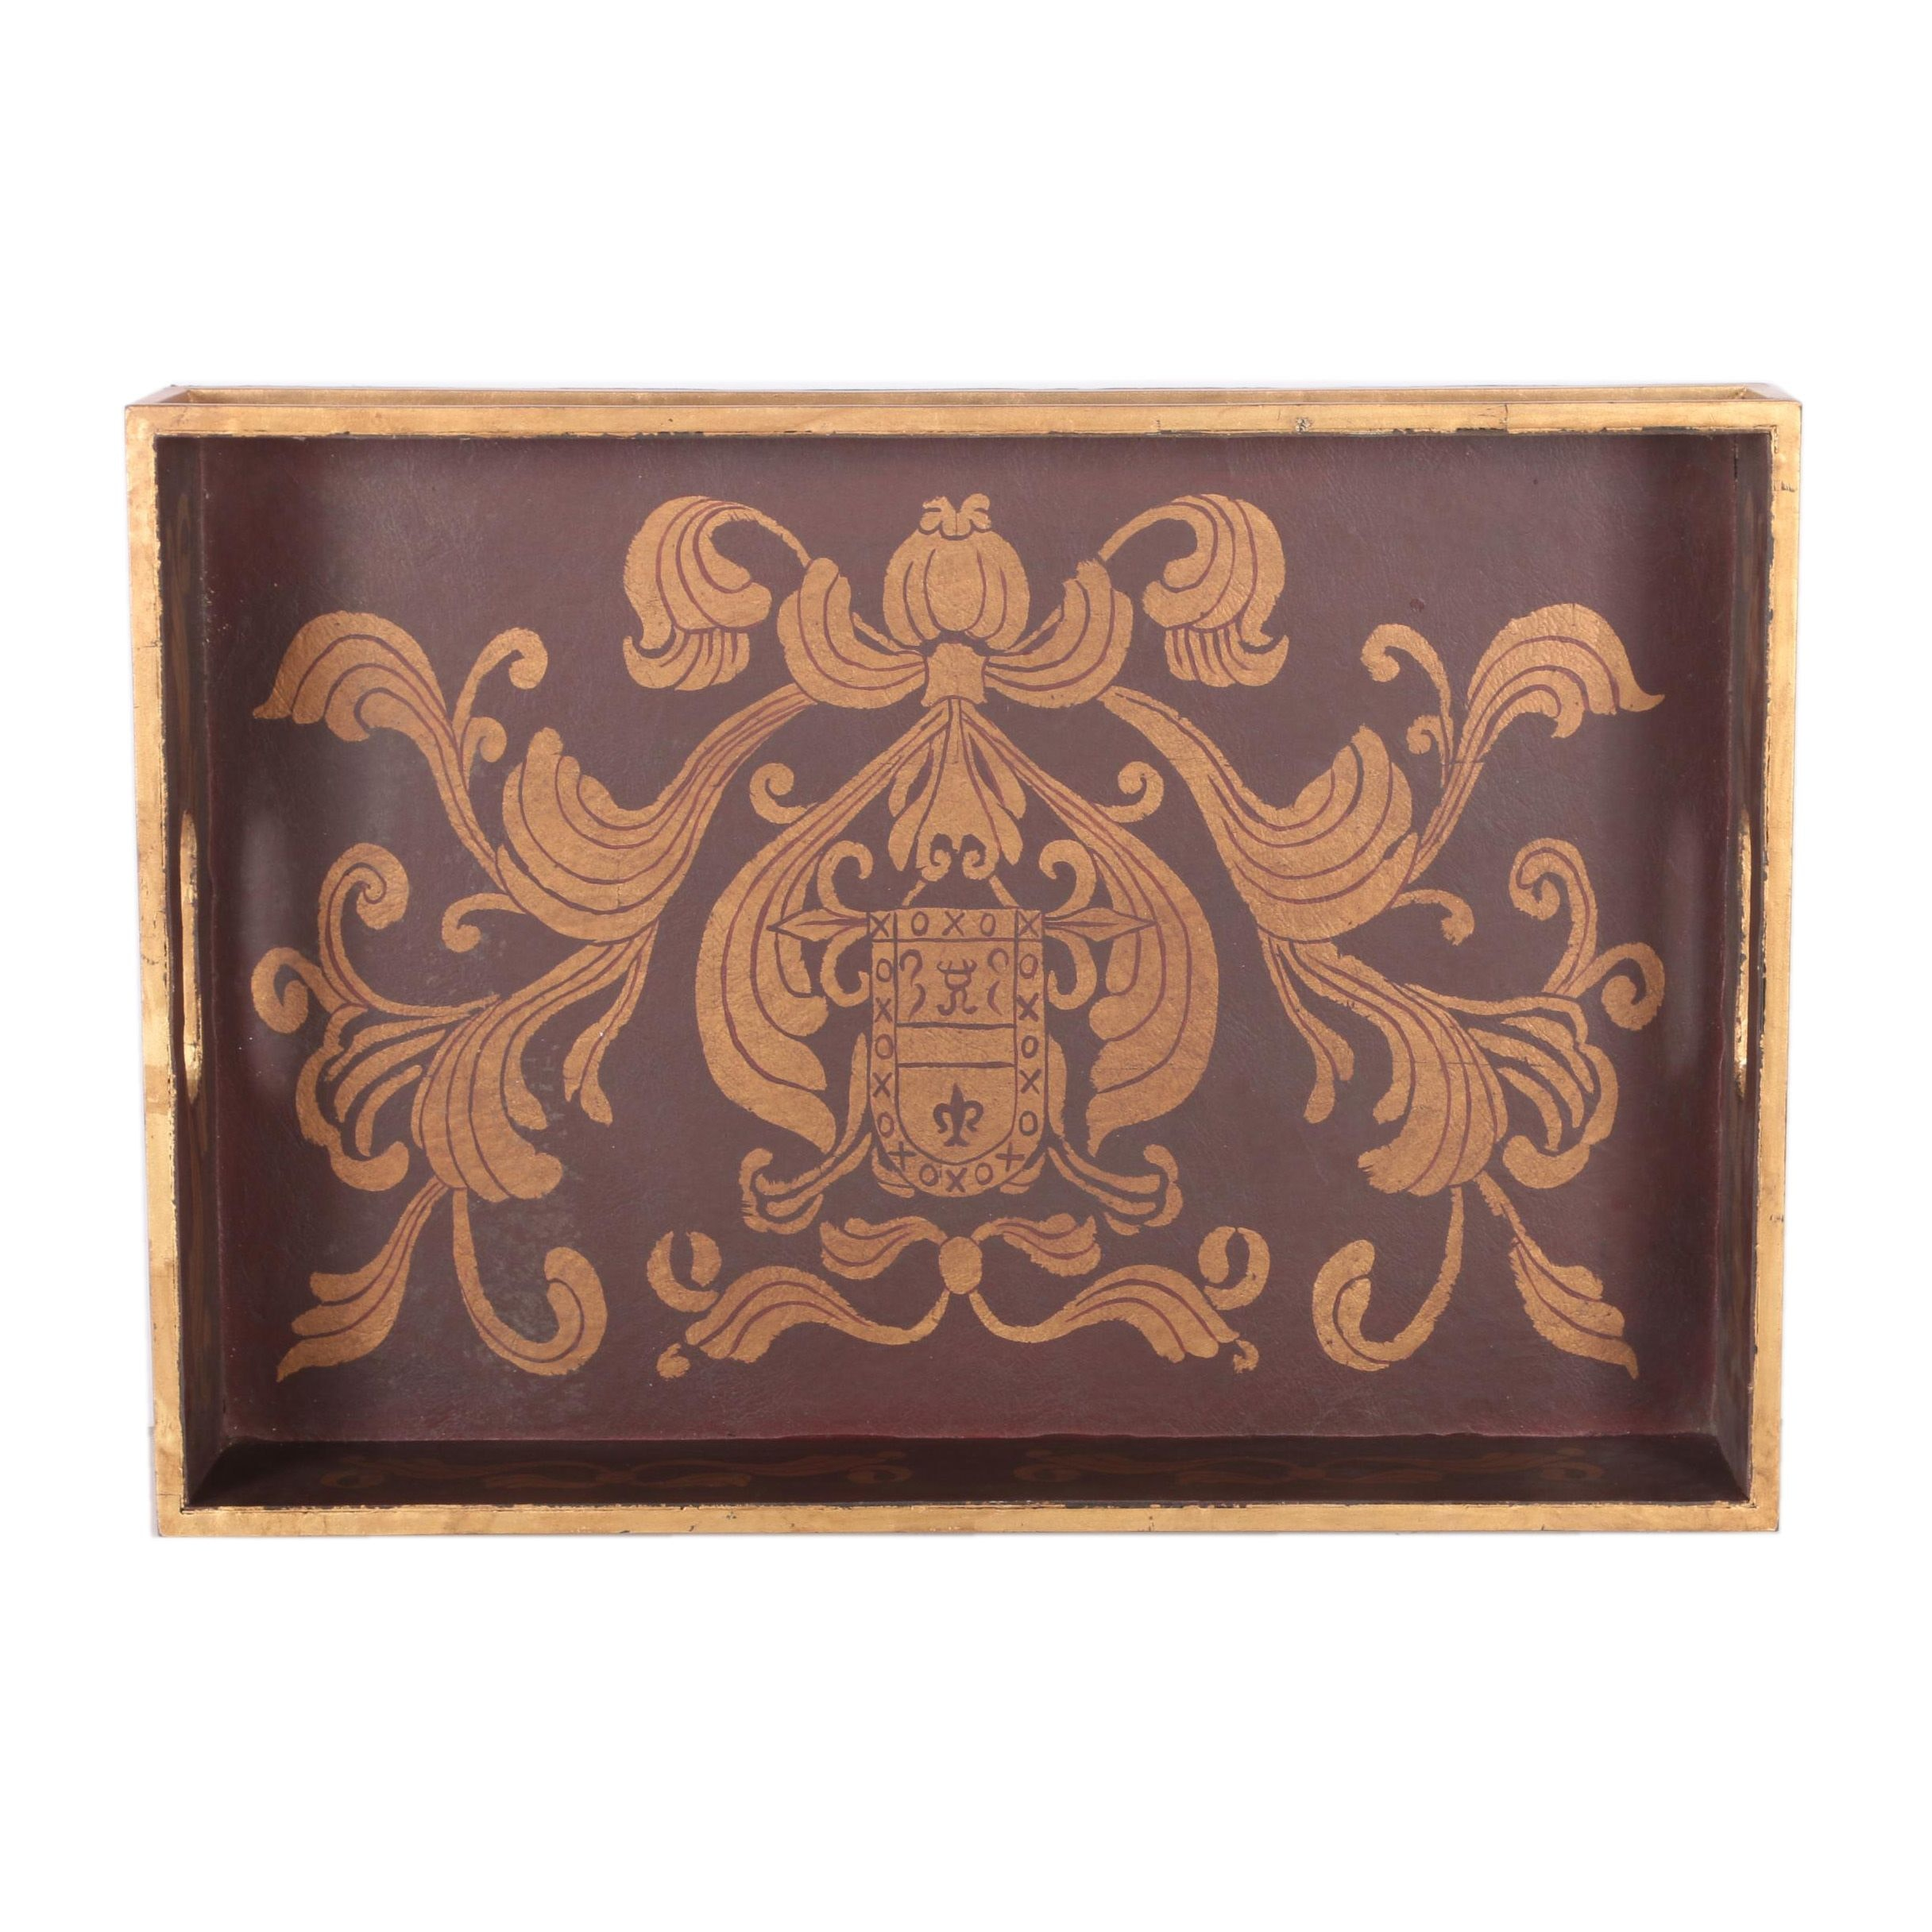 Wood and Metal Decorative Tray with Fleur-de-Lis Design